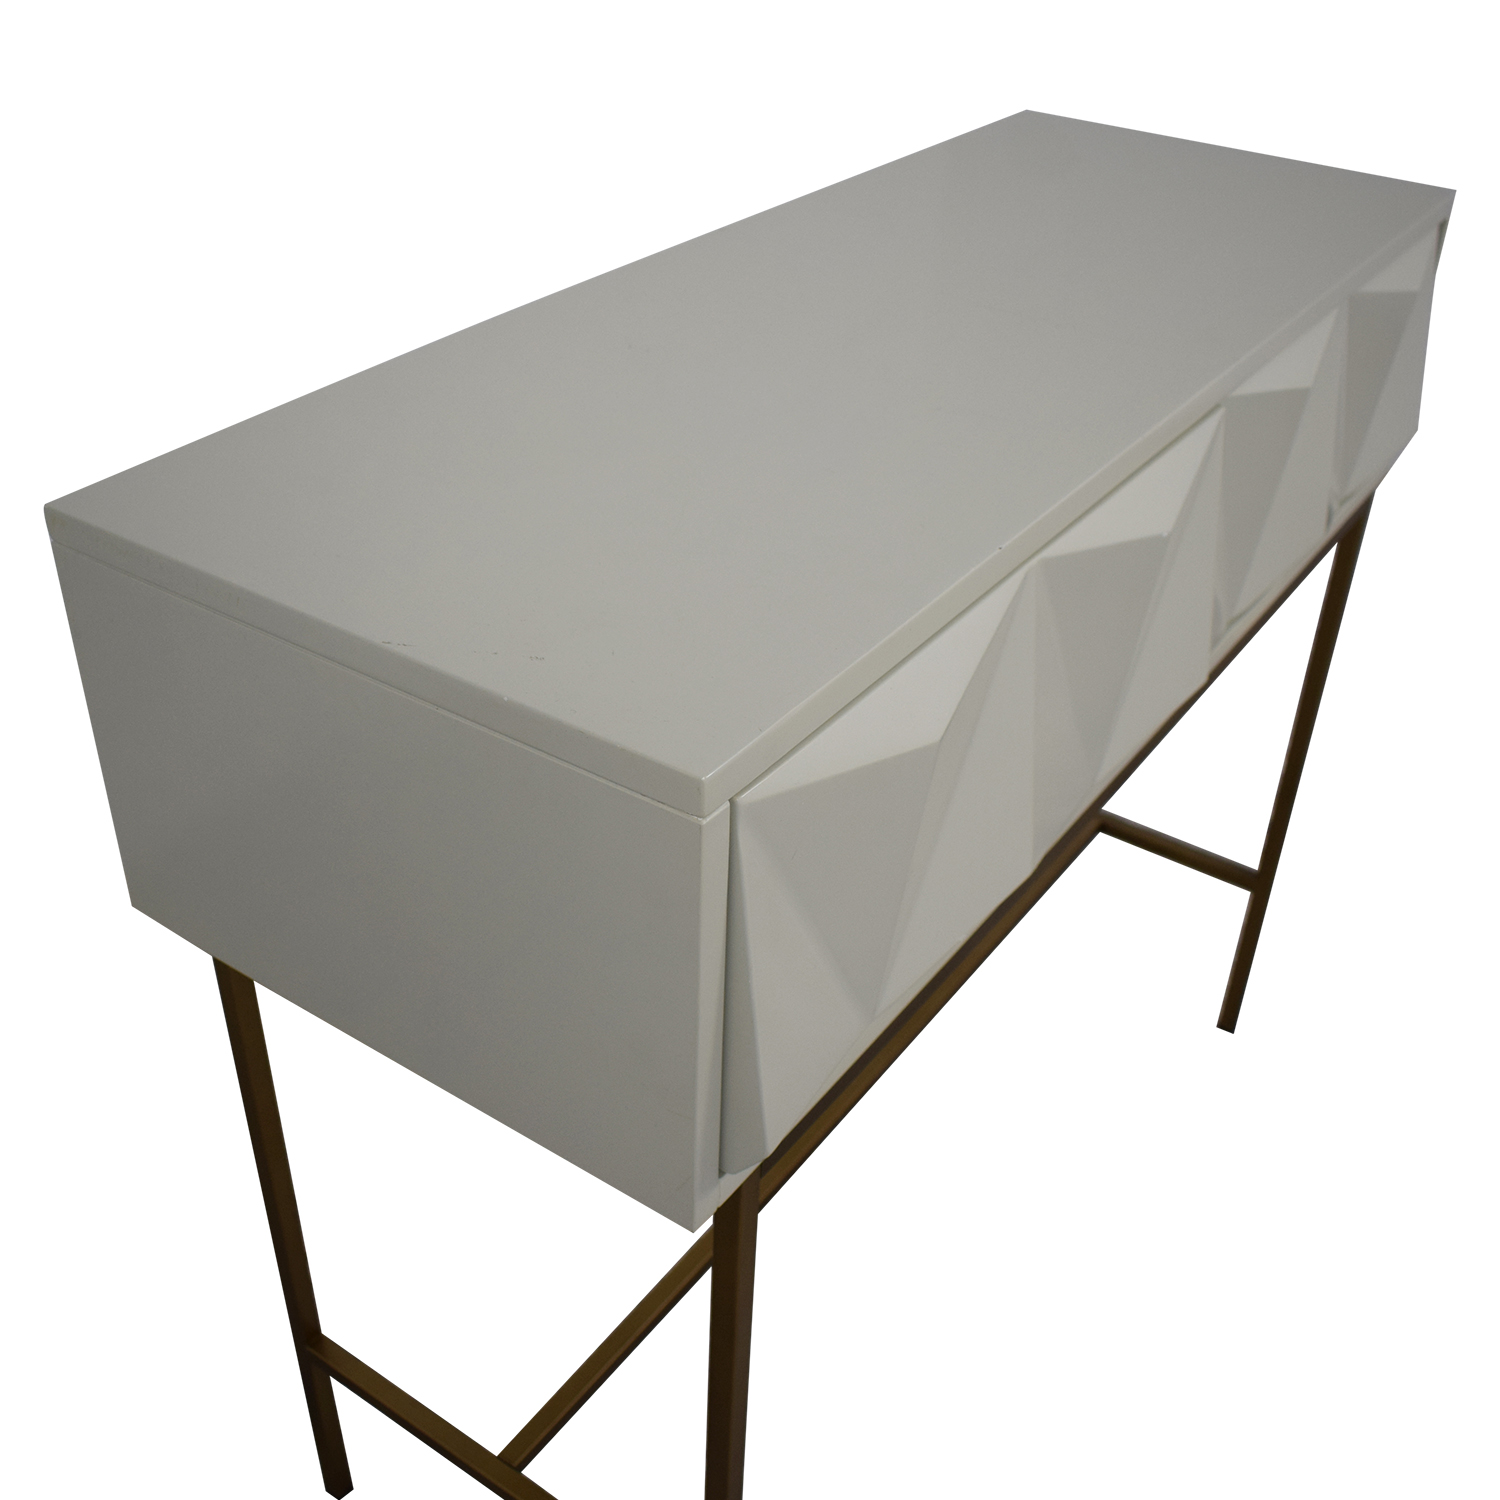 buy West Elm West Elm Sculpted Geo Console online